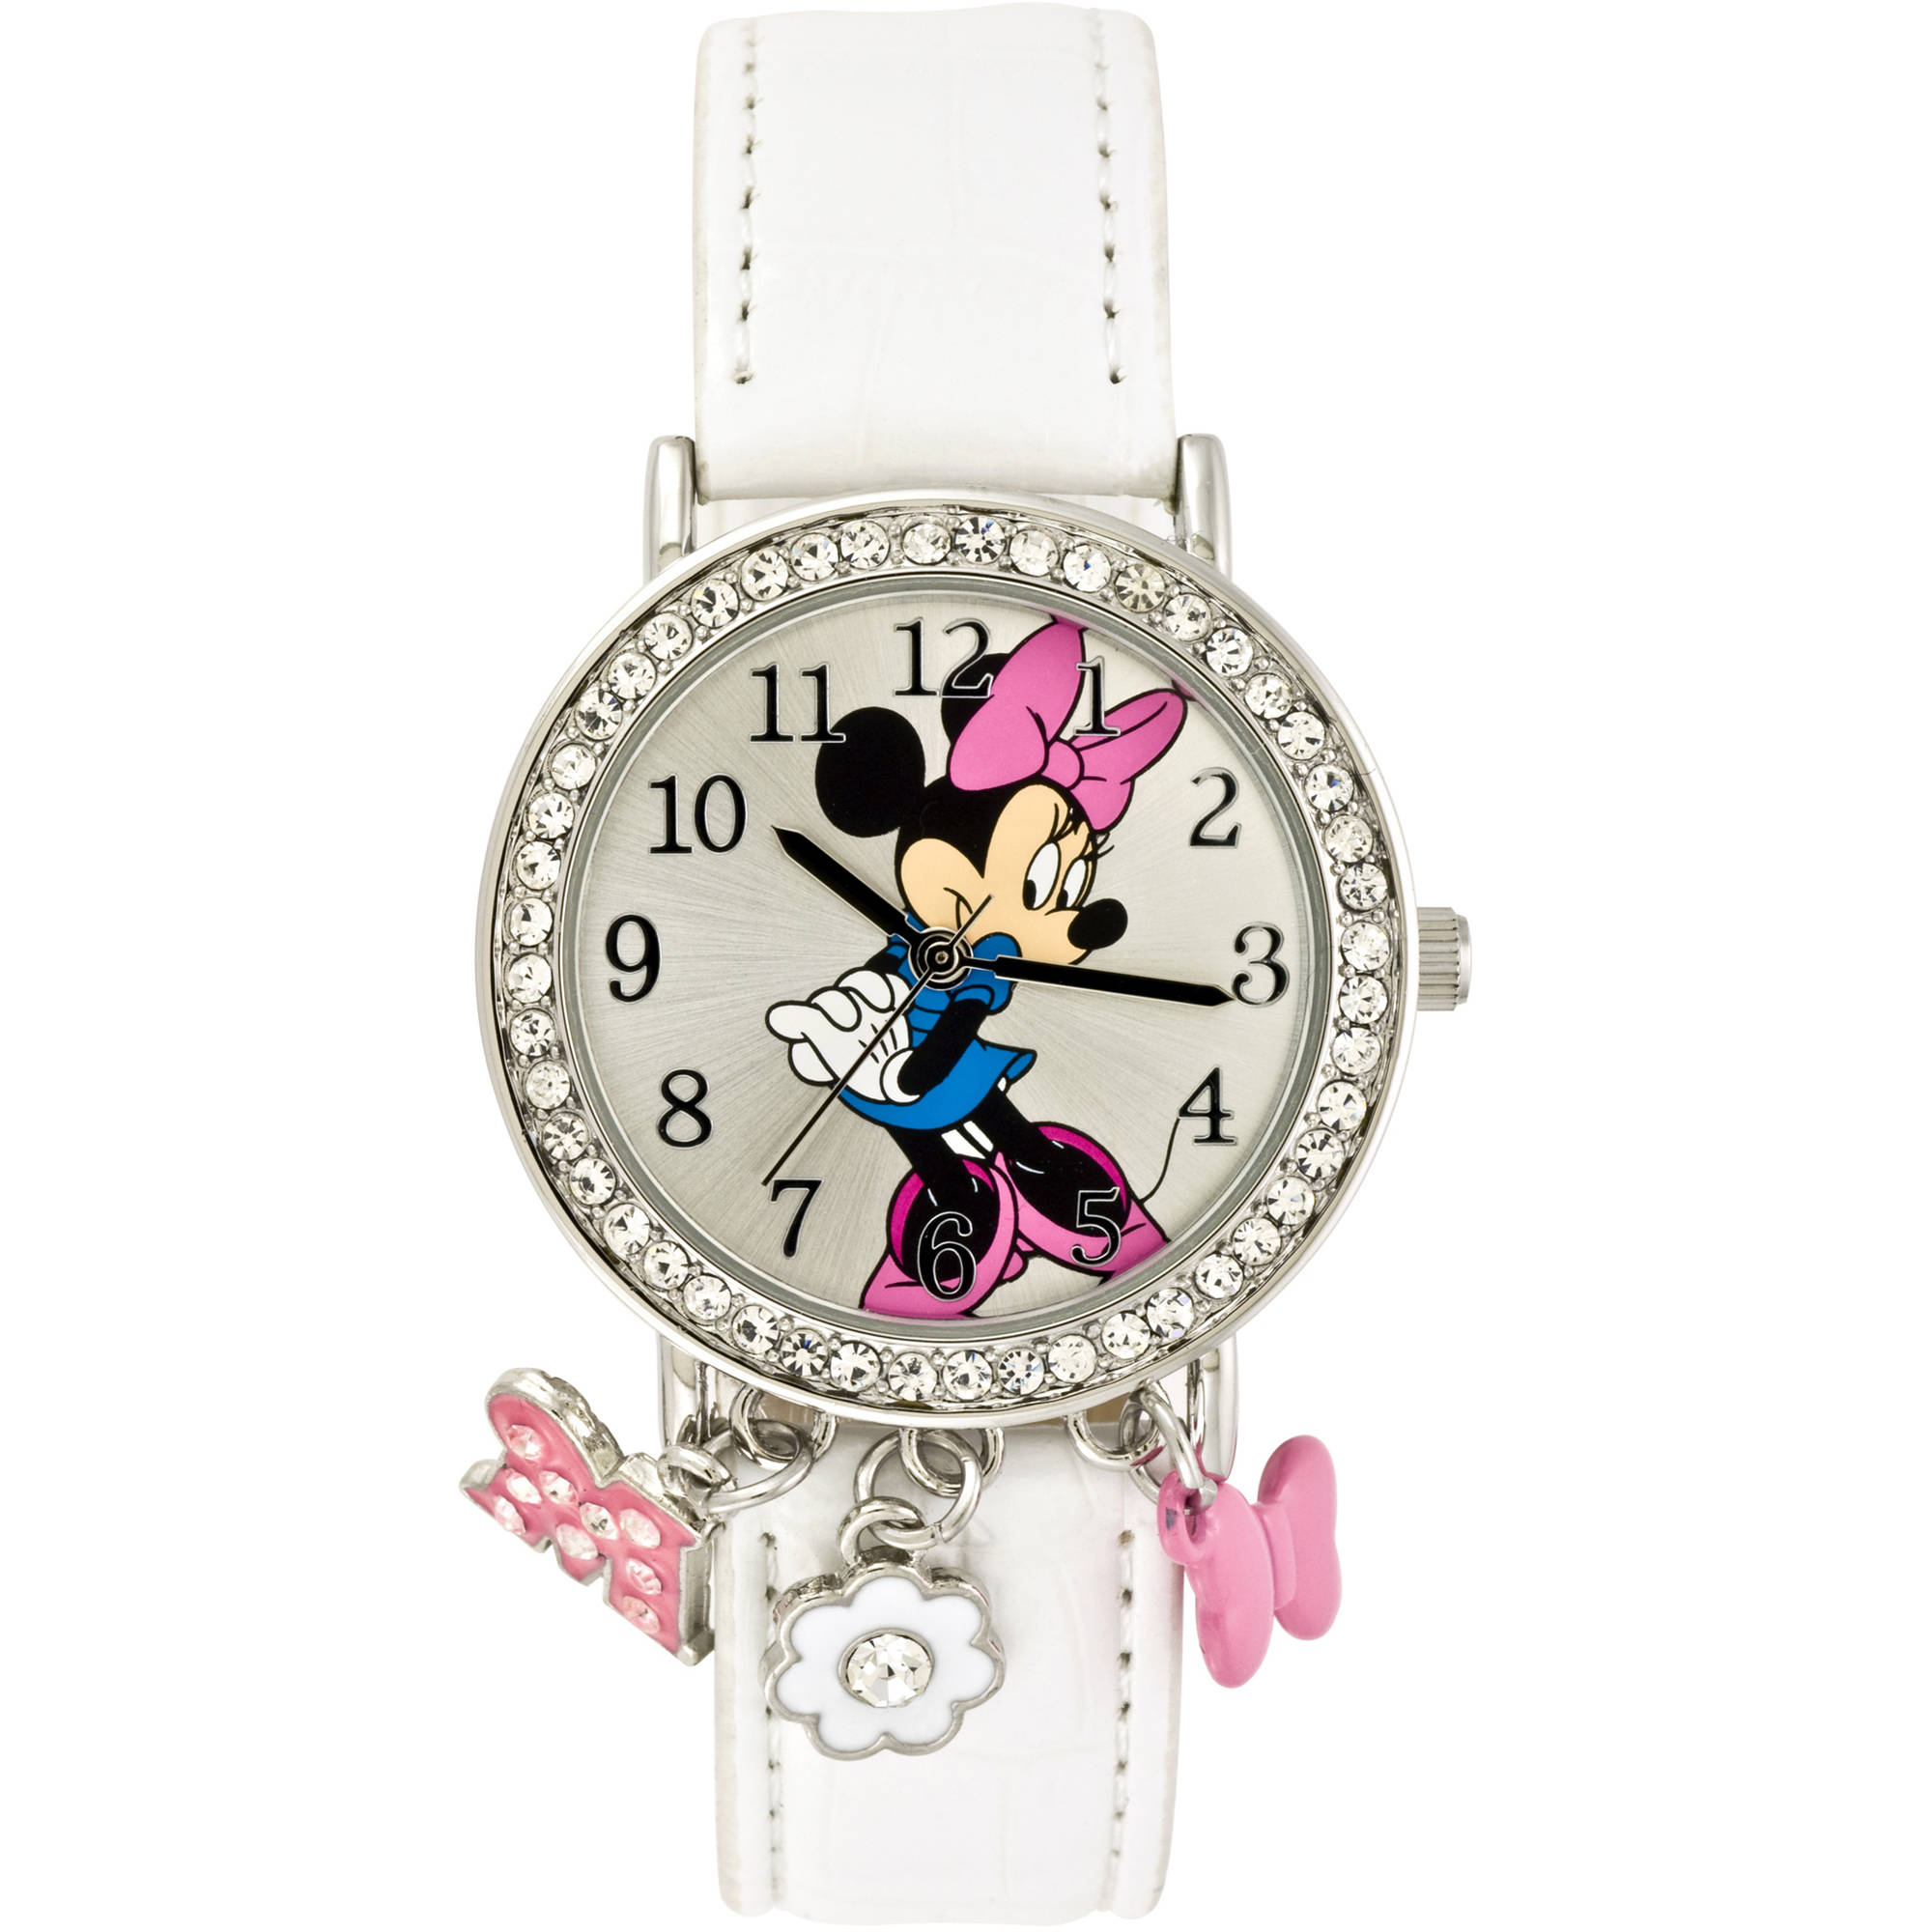 Minnie Mouse Stone Case with Dangling Charms Character-Printed Dial Analog Watch, White Croco PU Strap